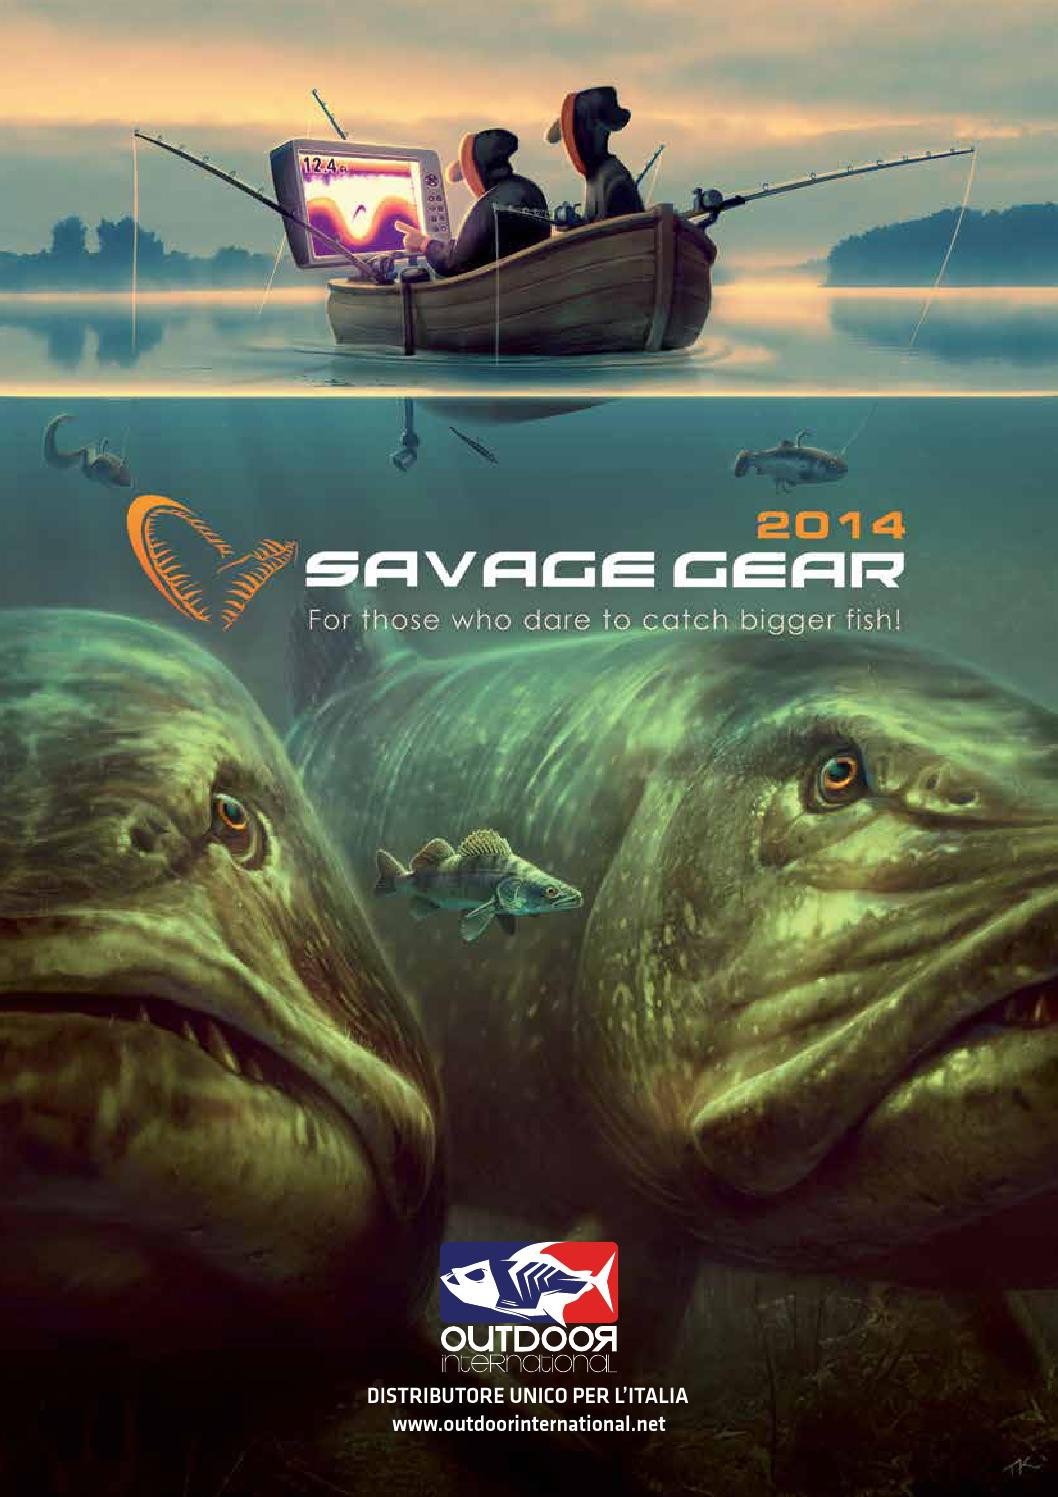 Savage Gear MPP 9 274cm SPIN /> 170g 2 pezzi Spinning